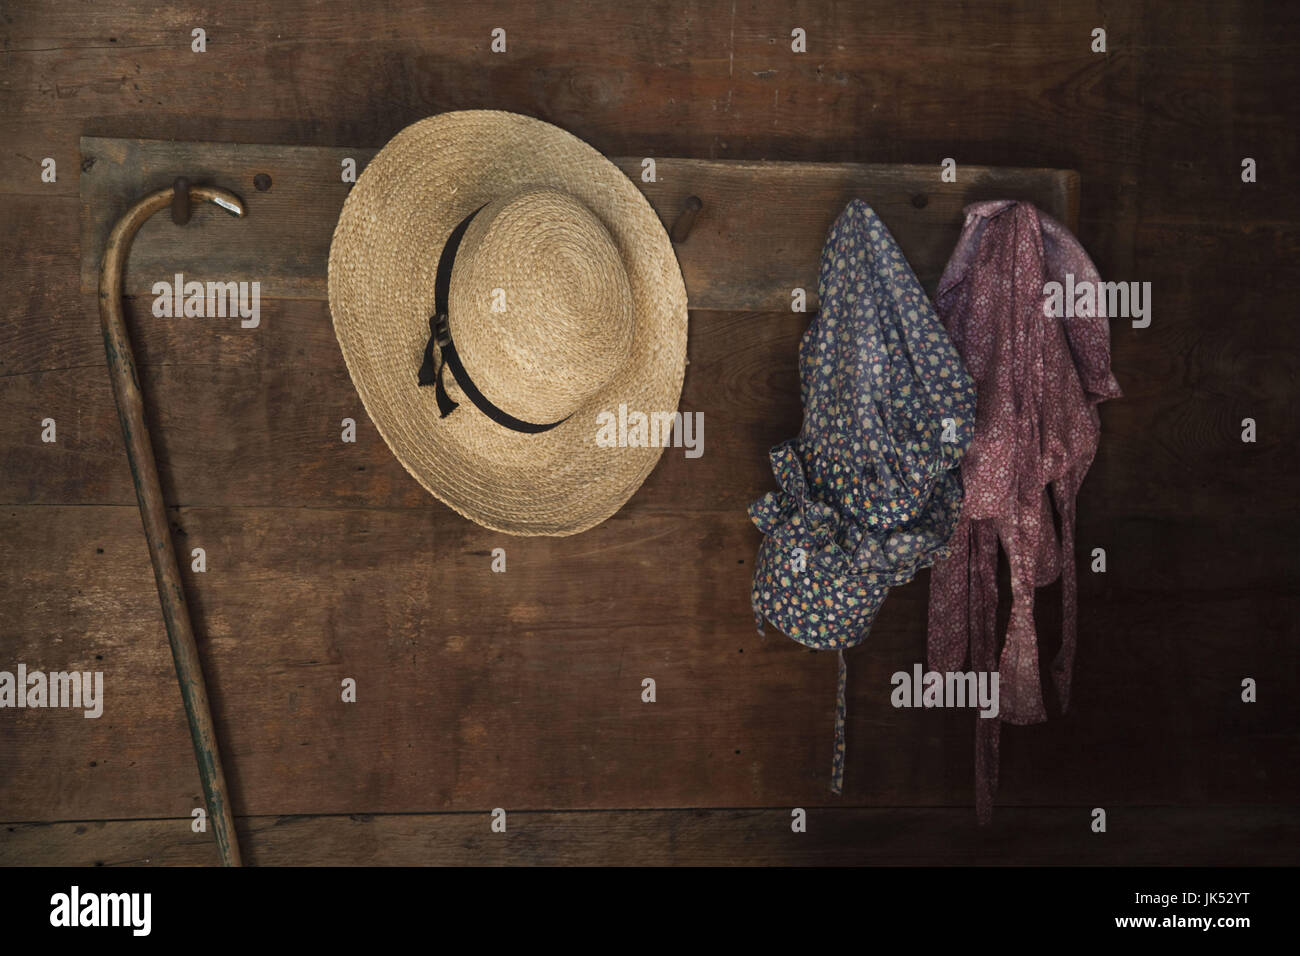 USA, Alabama, Montgomery, Old Alabama Town, Log Cabin interior - Stock Image